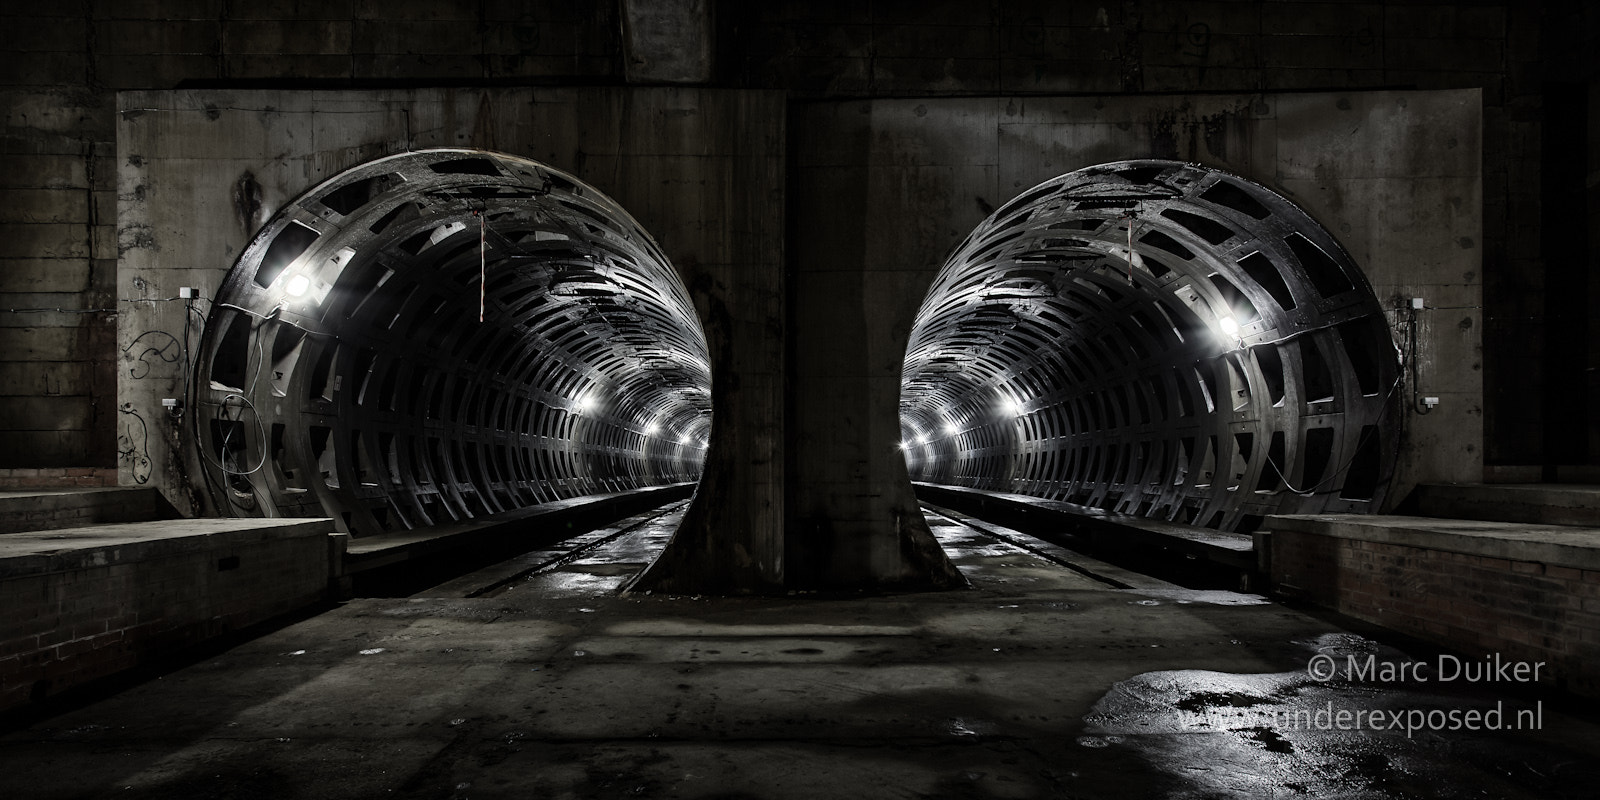 Photograph Tunnel Vision II by Marc Duiker on 500px